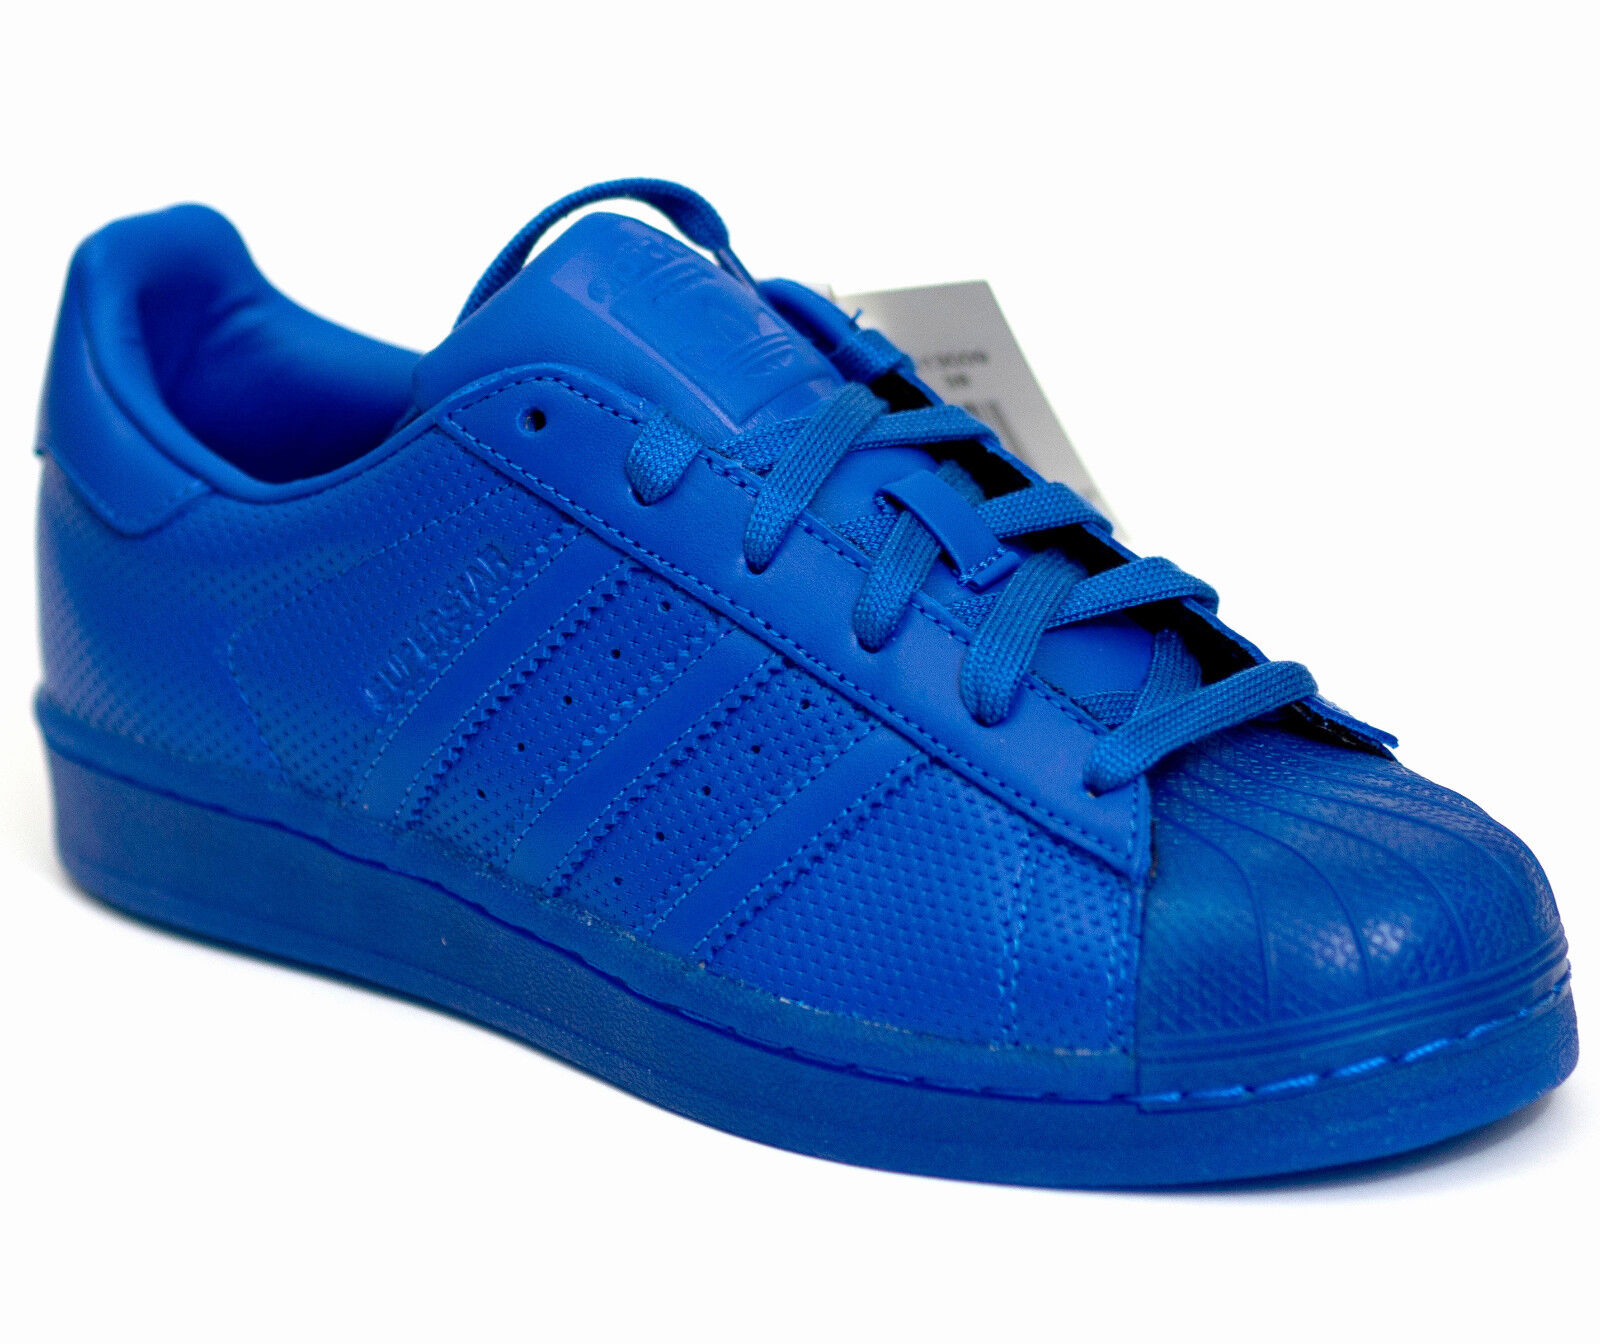 ADIDAS Originals Superstar Adicolor 37 Low     in Pelle MIX BLU NUOVO 0ab4a4